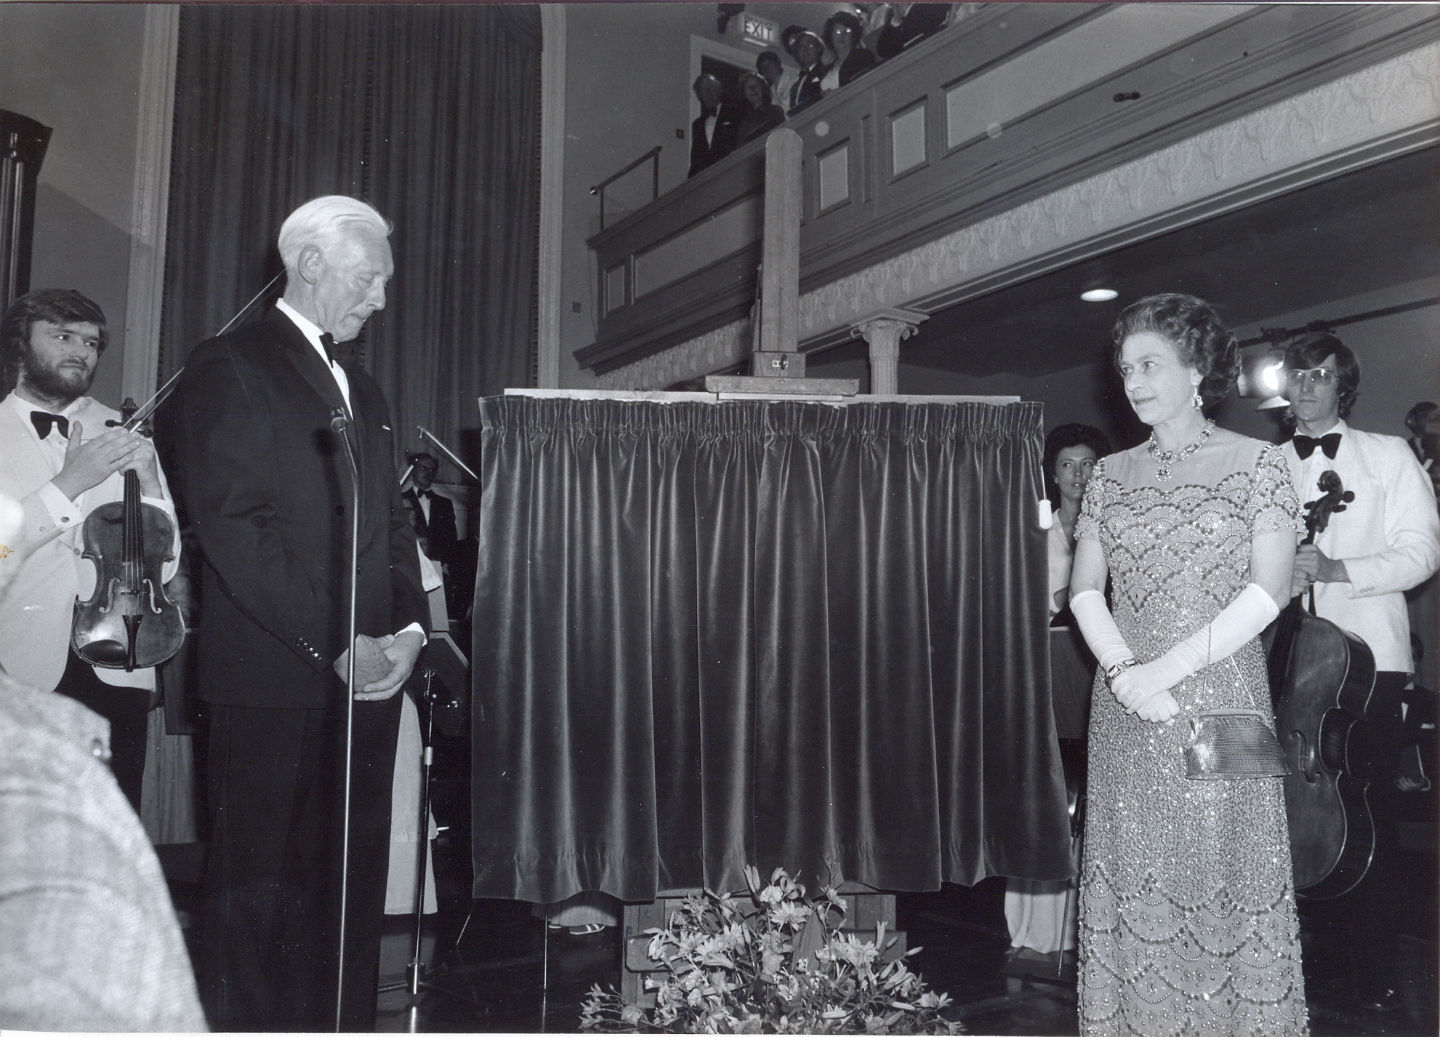 HM Queen Elizabeth II unveils The Queen's Hall plaque